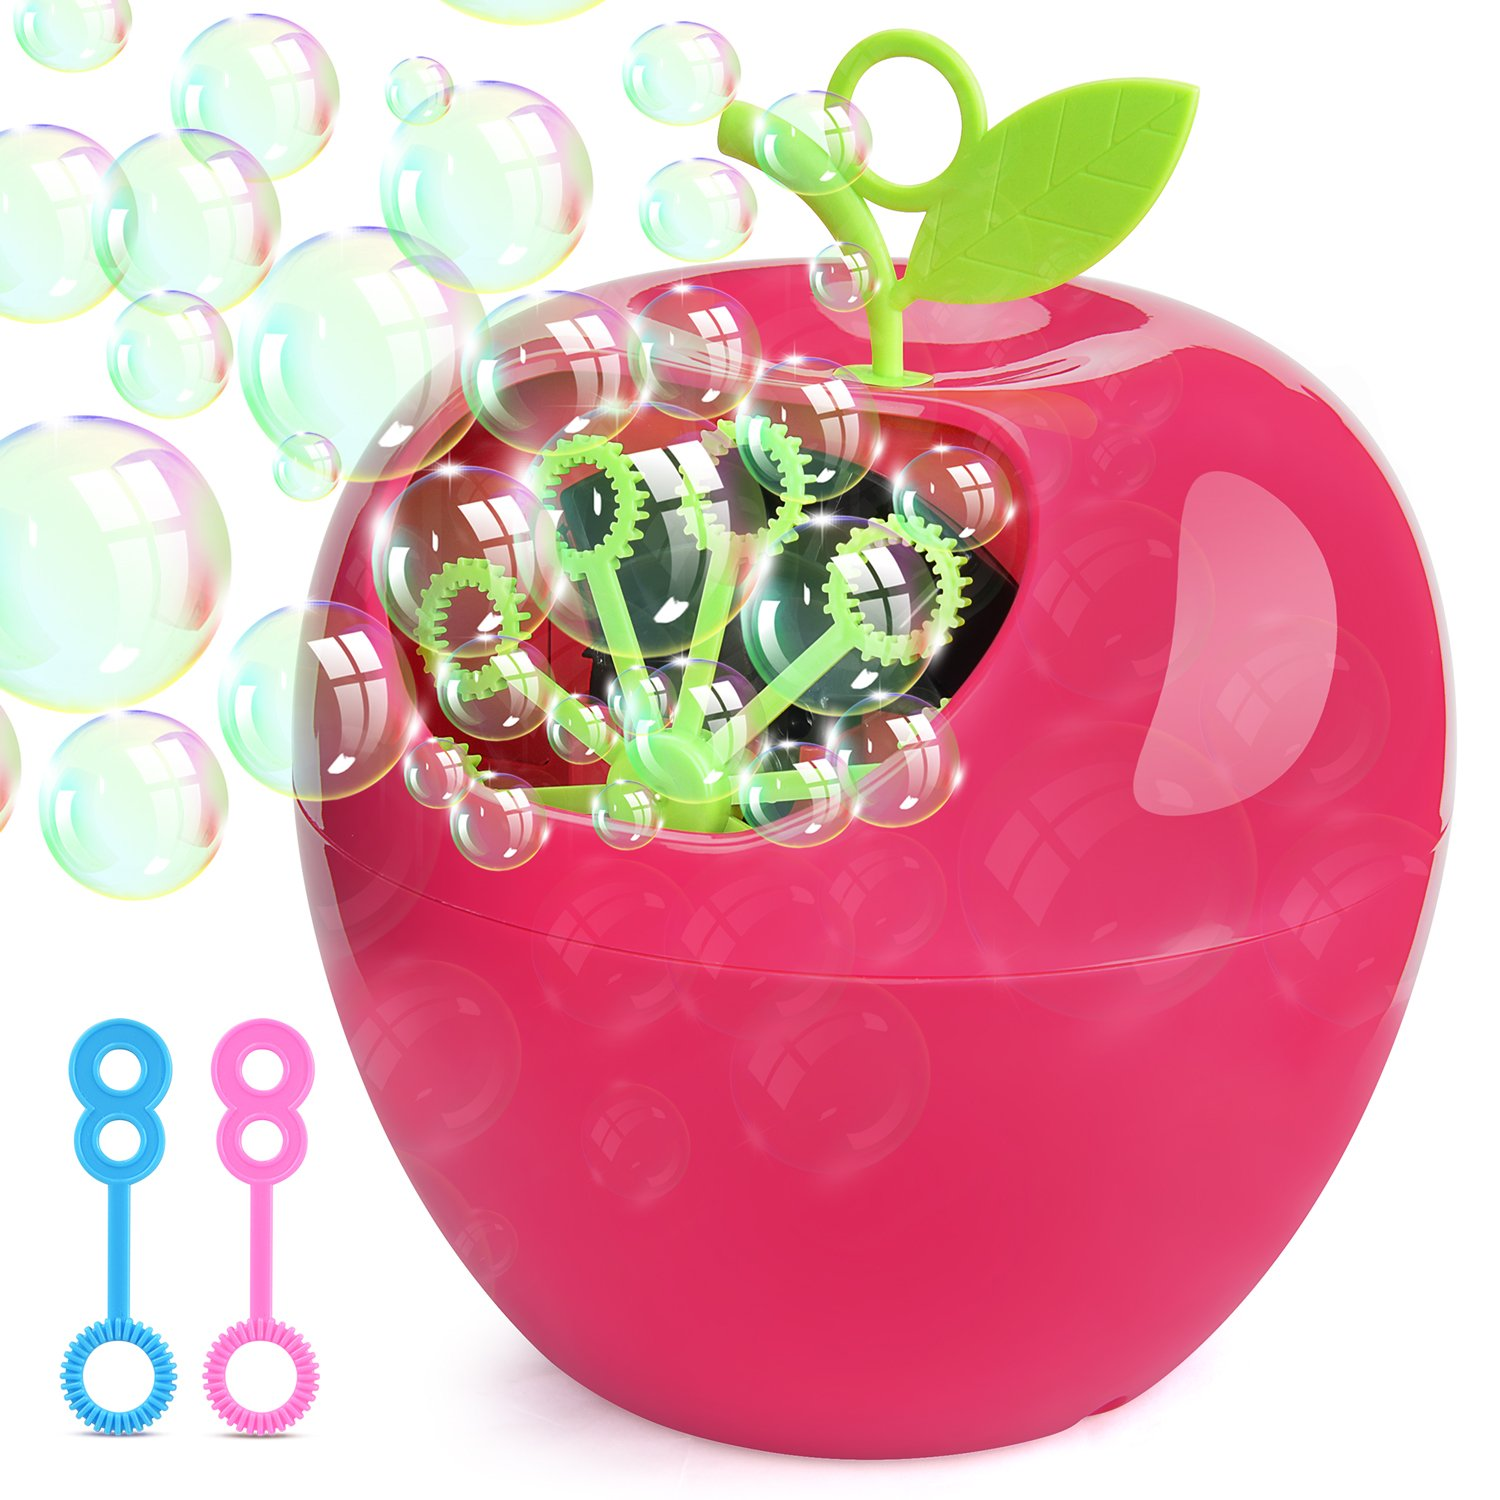 Victostar Automatic Bubble Machine High Output Over 800 Bubbles Per Minute Outdoor Indoor Use 4 AA Battery Operated Not Include Apple Shape